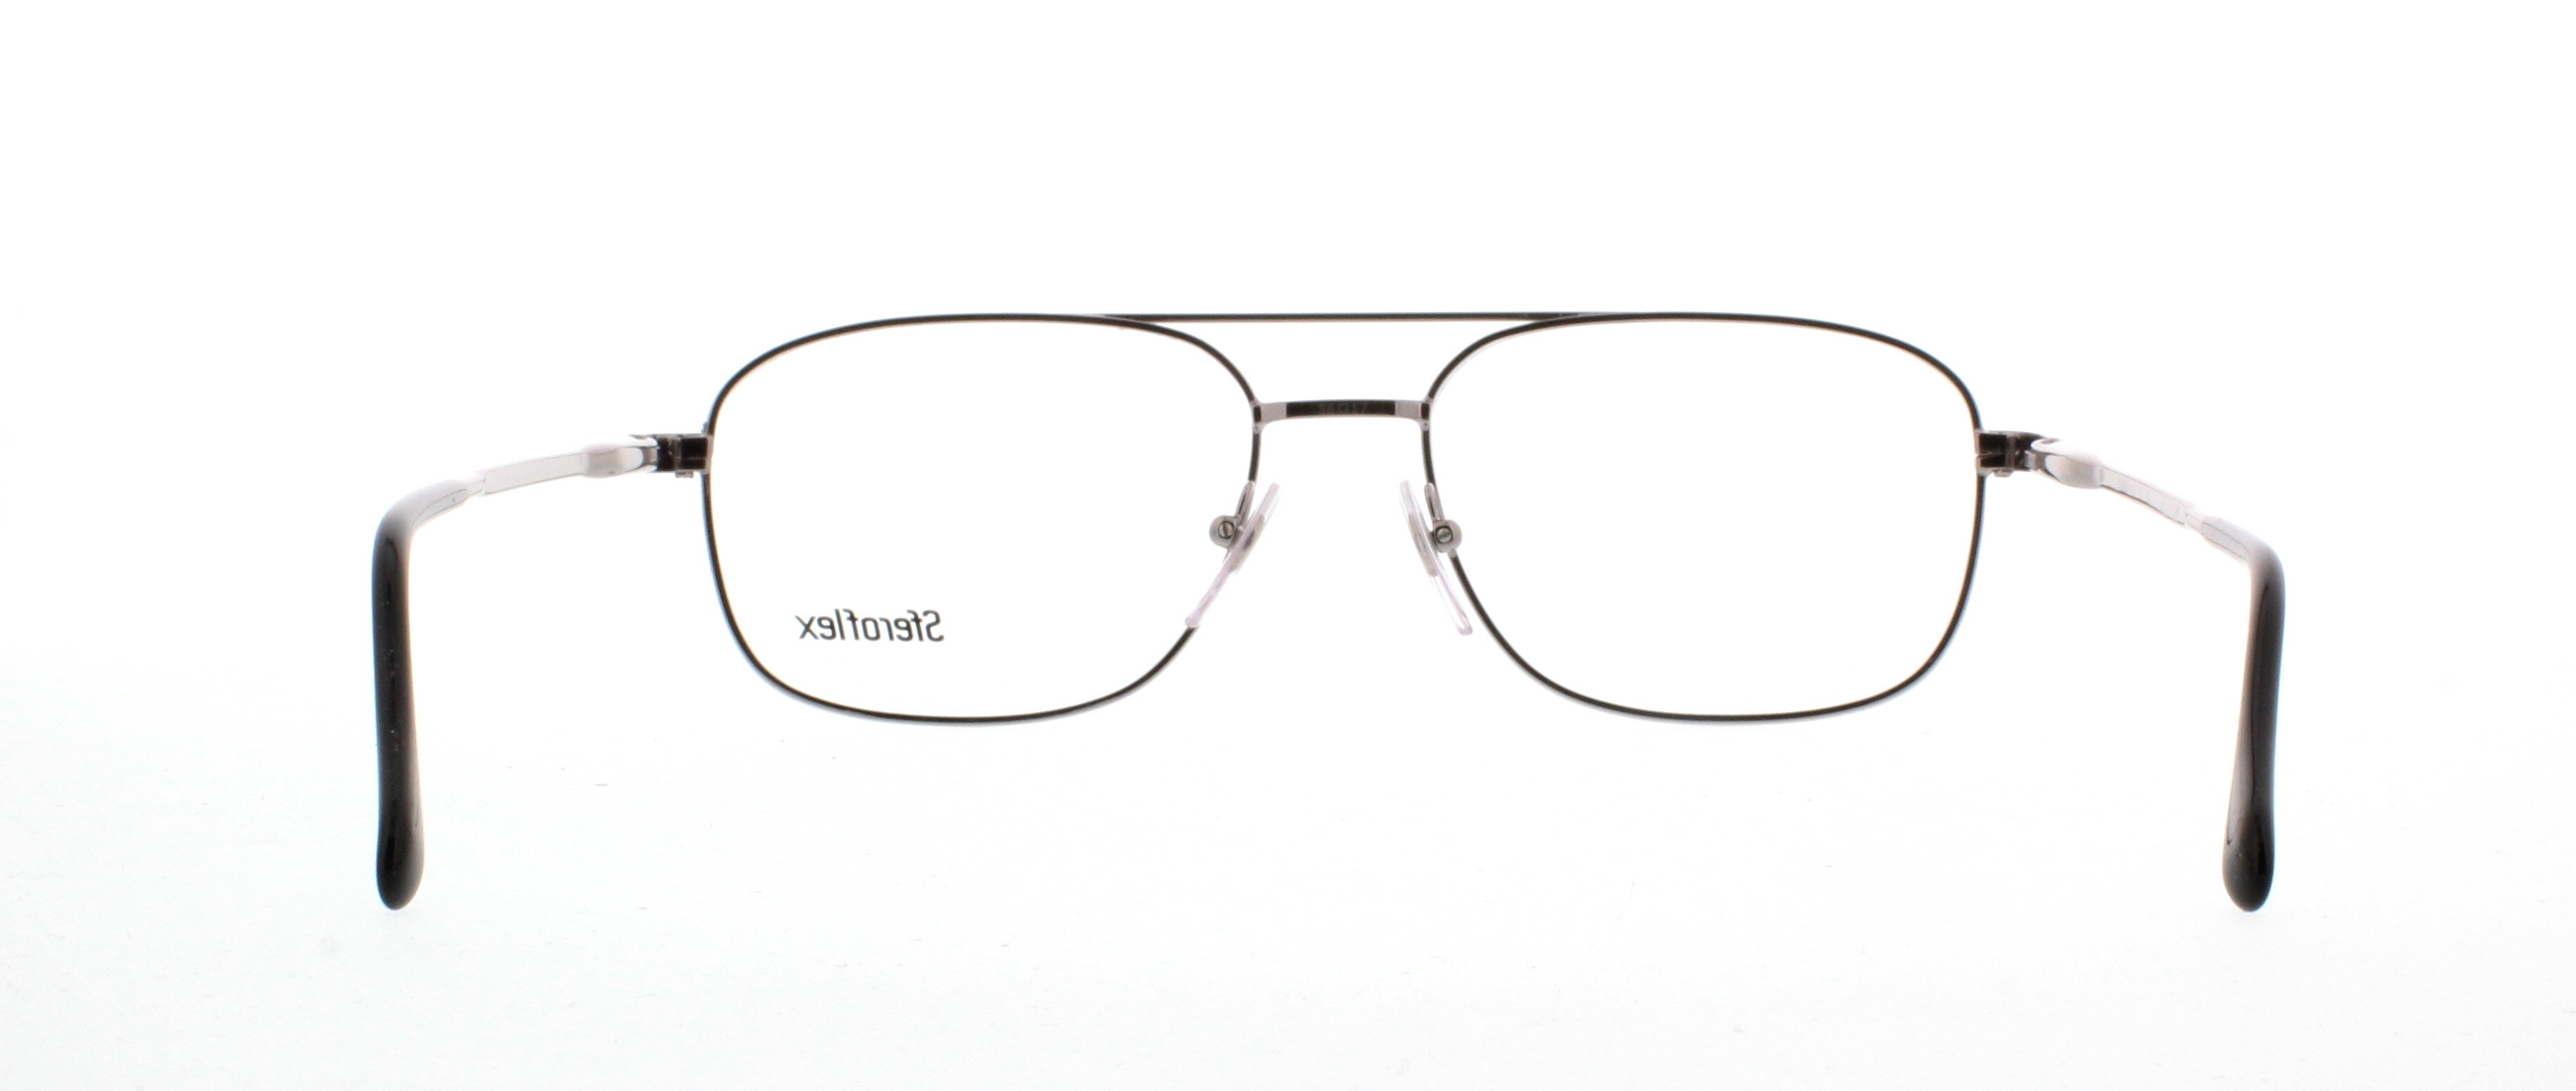 Designer Frames Outlet Sferoflex SF - What is invoice processing online glasses store